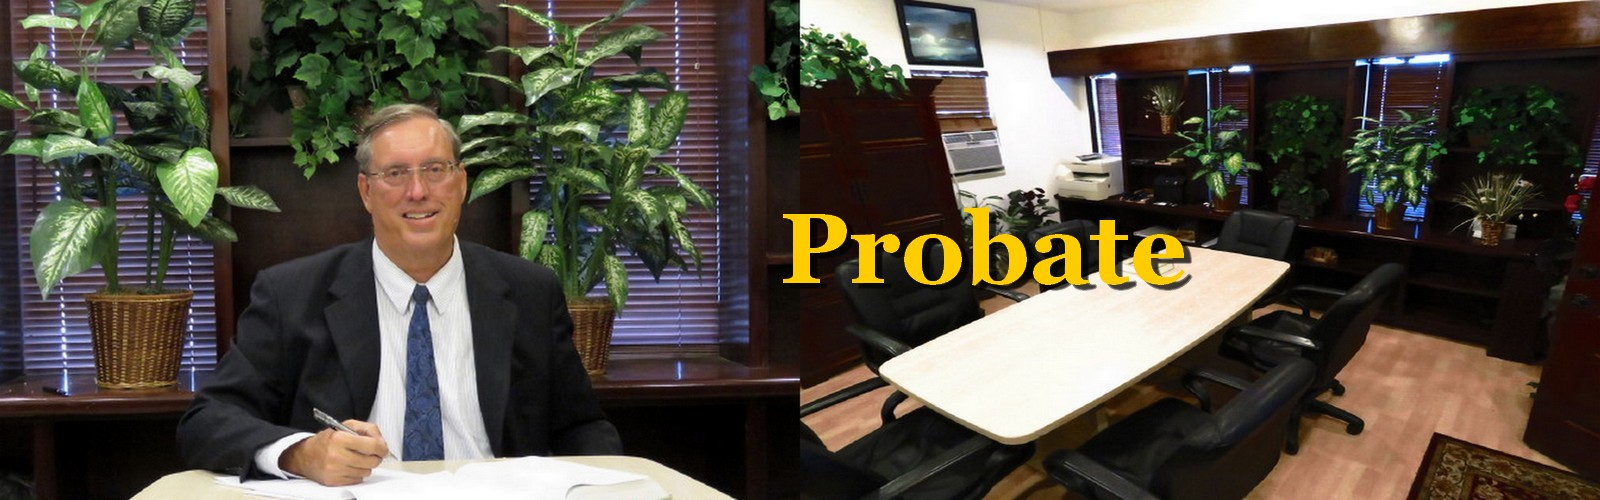 Herbert L. Allen, Jr., P.A., Probate Attorney, has experience transferring title to property in Florida. If you live outside of Florida, like New York, Colorado, or another state, Ancillary Administration in Florida may help you.. Call 321.779.1211 for probate help in Florida.